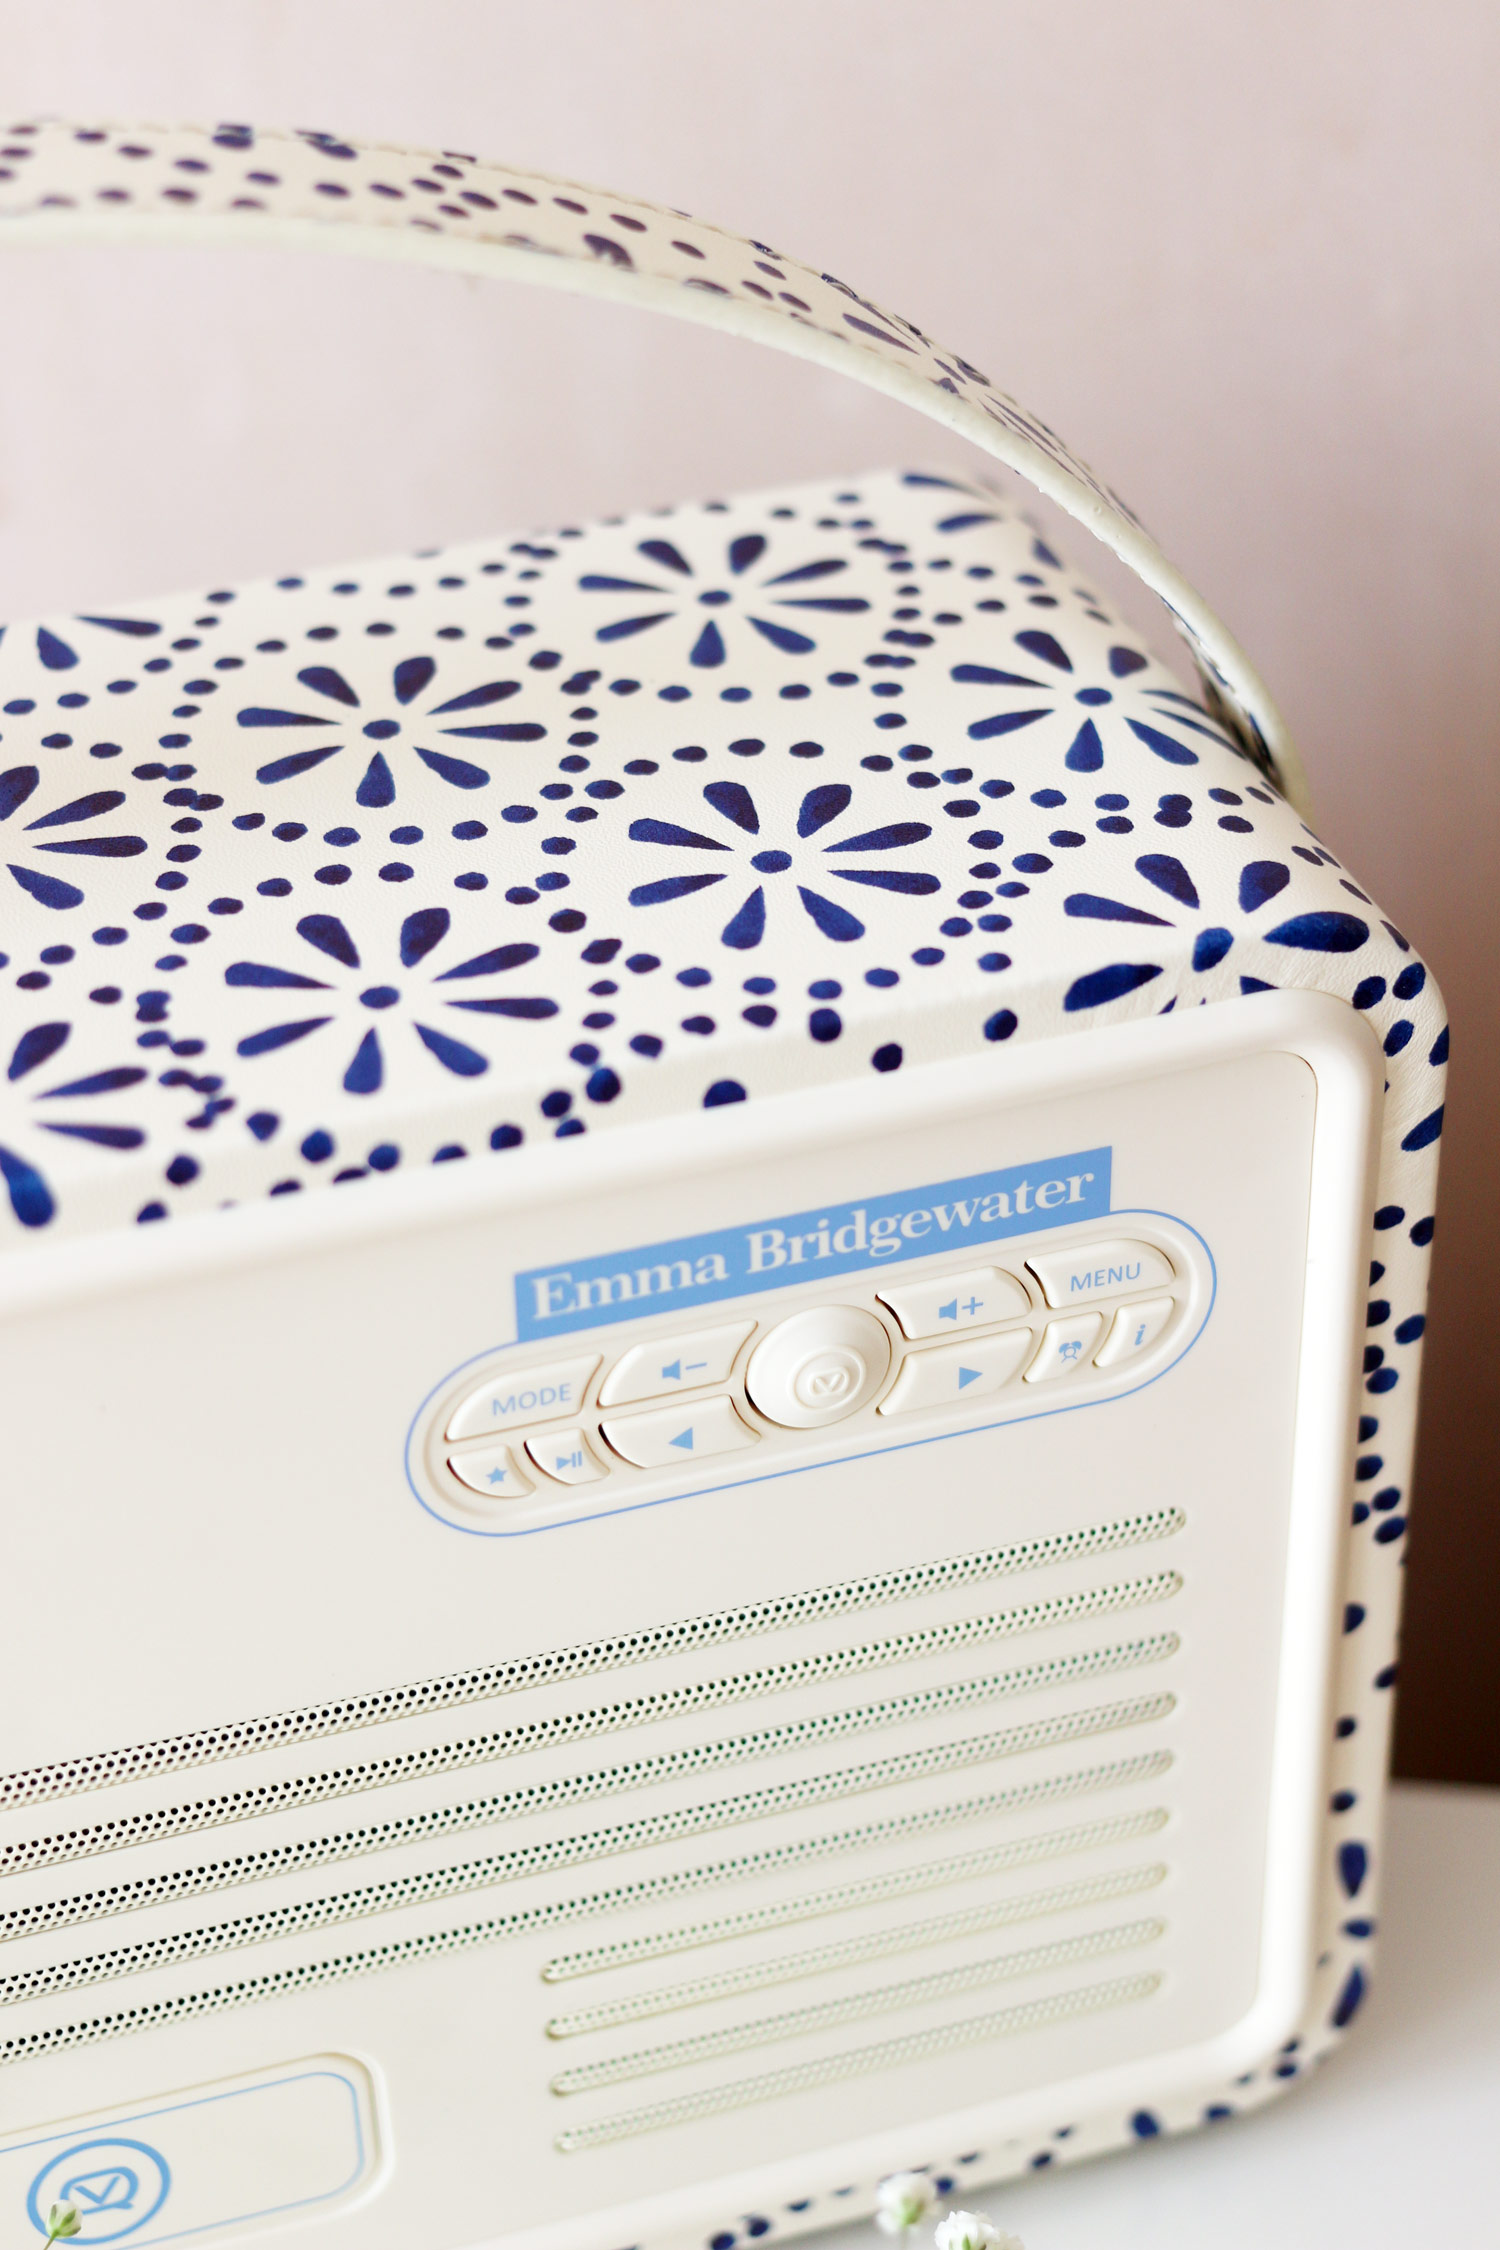 mothers-day-present-bloom-and-wild-emma-bridgewater-digital-radio-offer-3